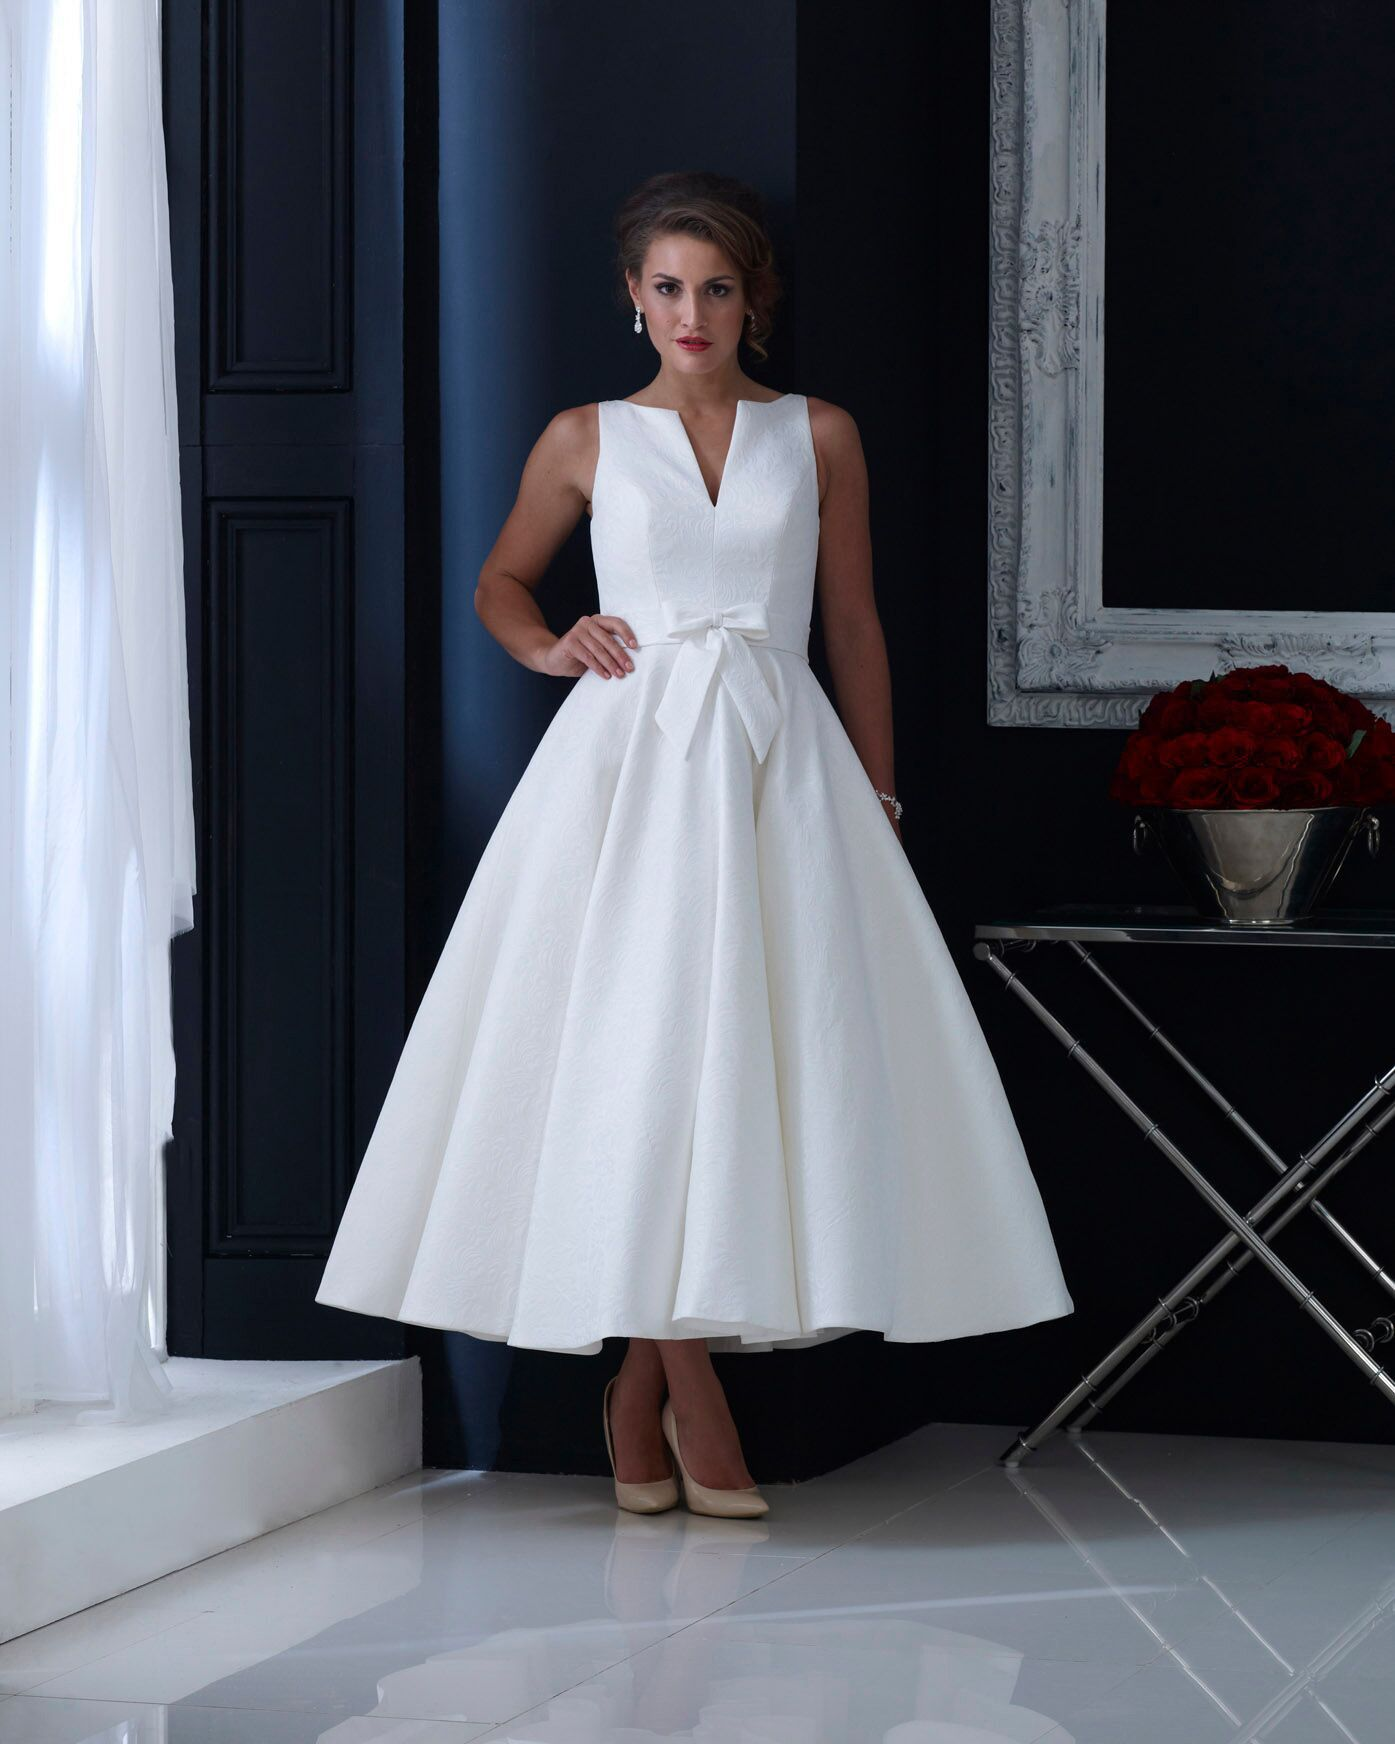 f250d885d4ec hn-veronica Brocade tea length wedding dress with subtle bow and elegant cut